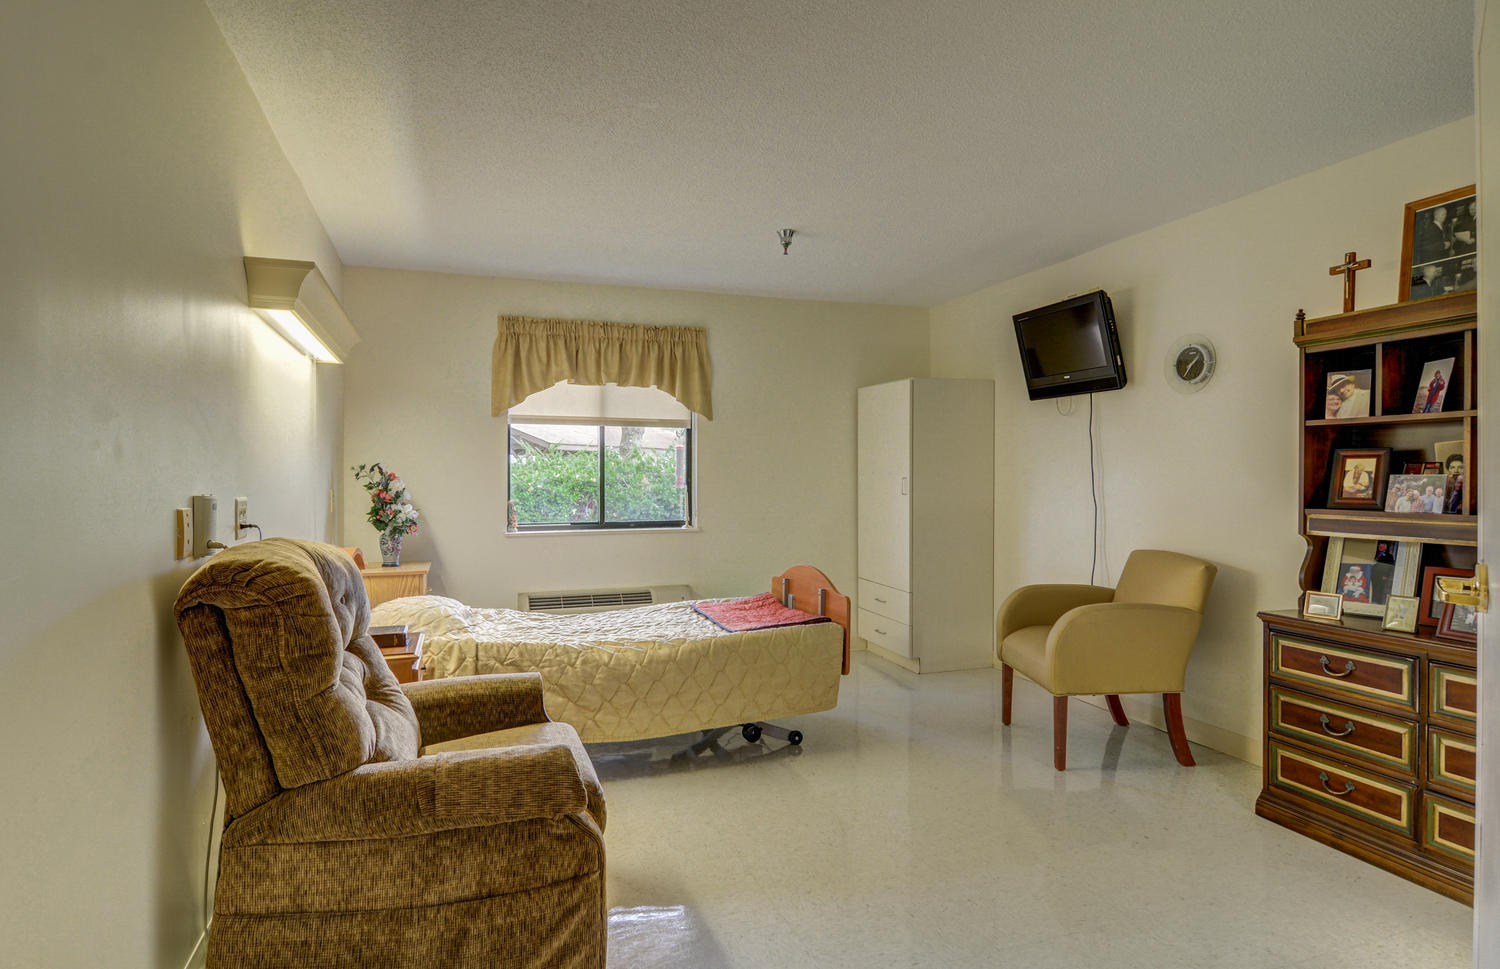 Stonerise Belmont private patient room with family photos, recliner chair and TV